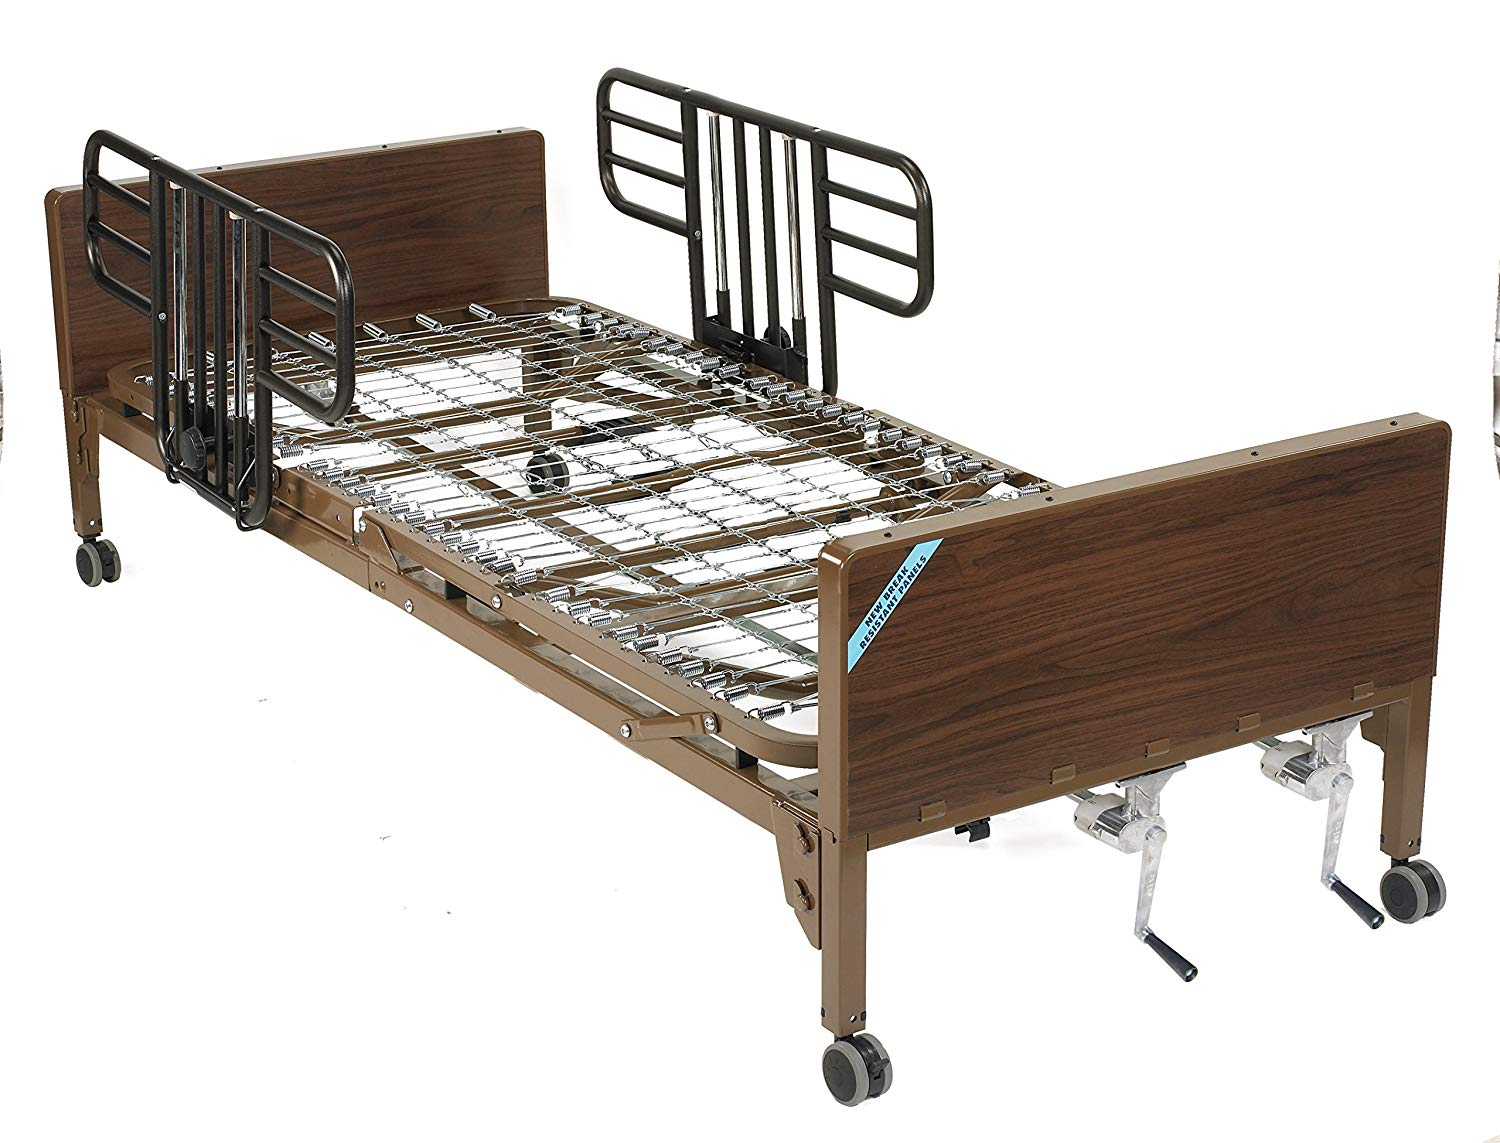 Astounding Hospital Beds For Home Top Brands And Buying Guide For 2019 Home Interior And Landscaping Mentranervesignezvosmurscom